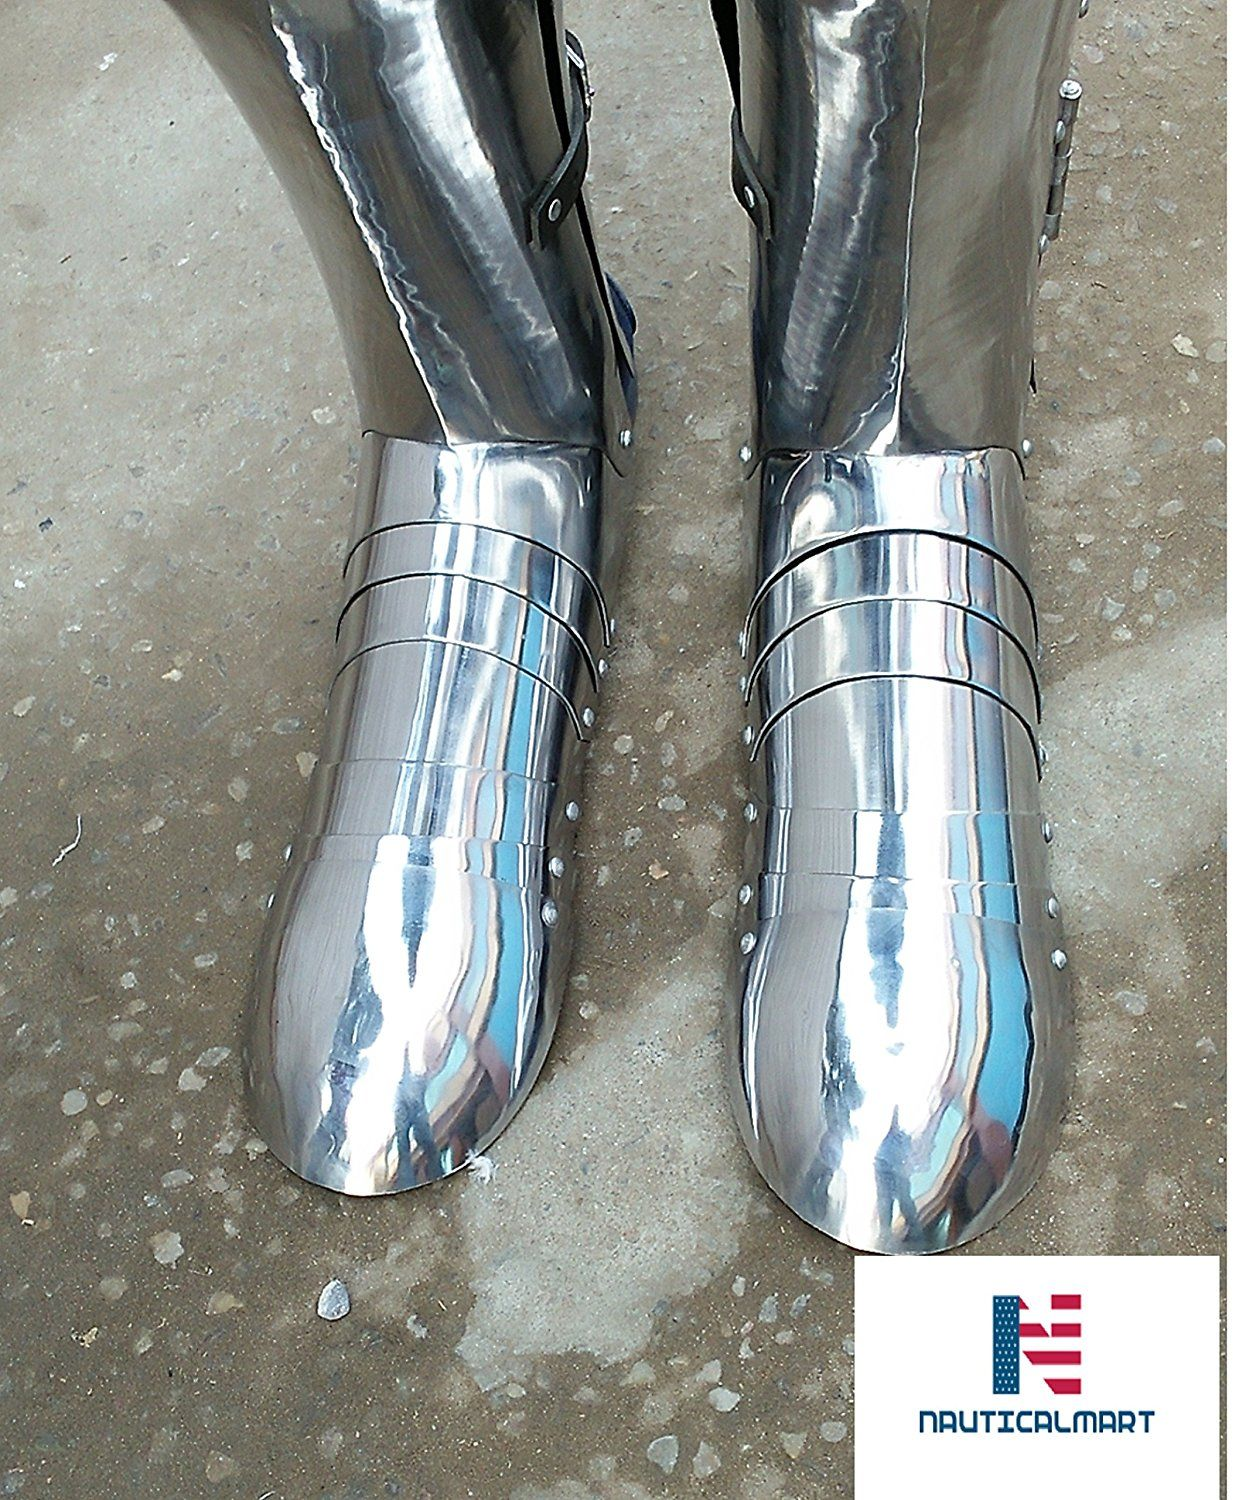 eed60ce8a96ac Nauticalmart Plate Armour medieval SCA Armour stainless Shoes ...